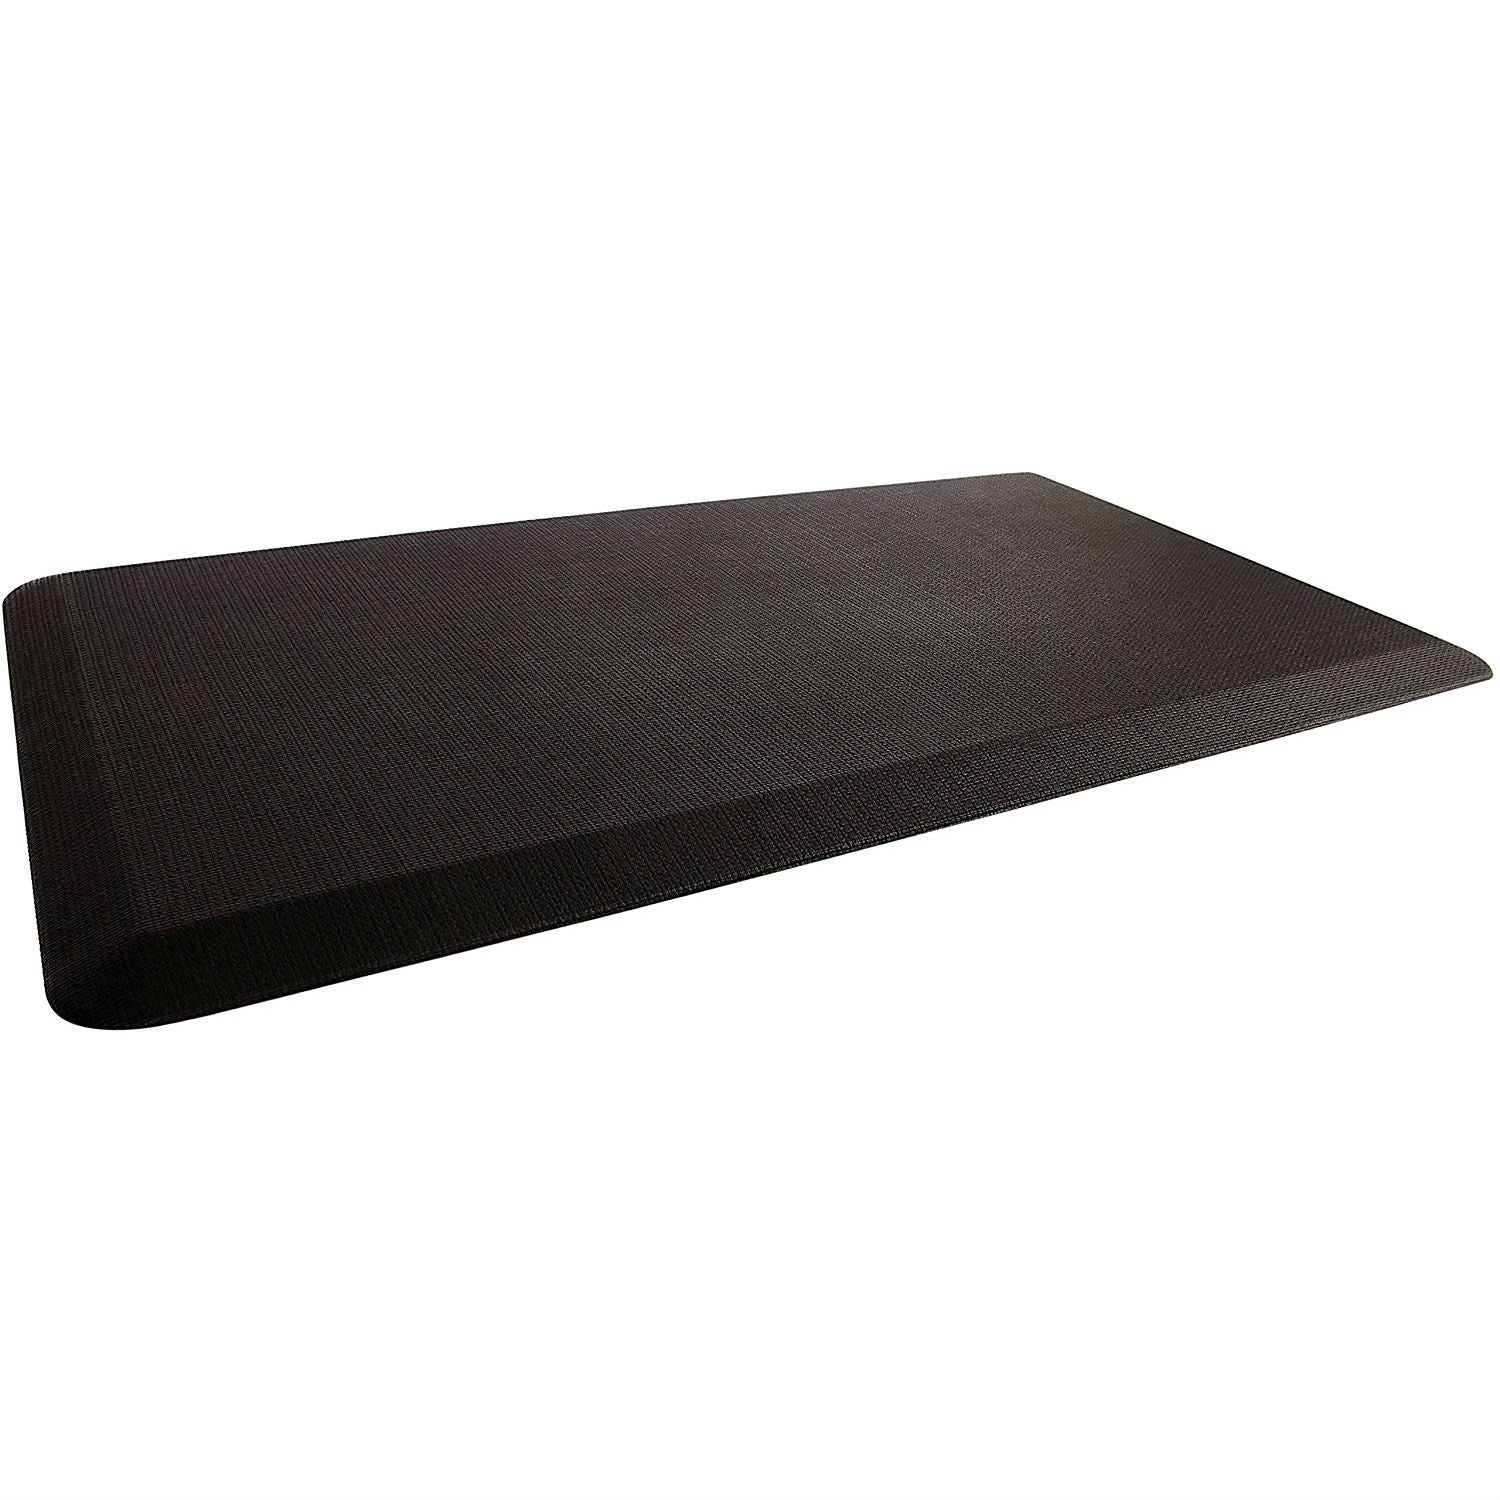 Cush Comfort Anti Fatigue Standing Floor Mat